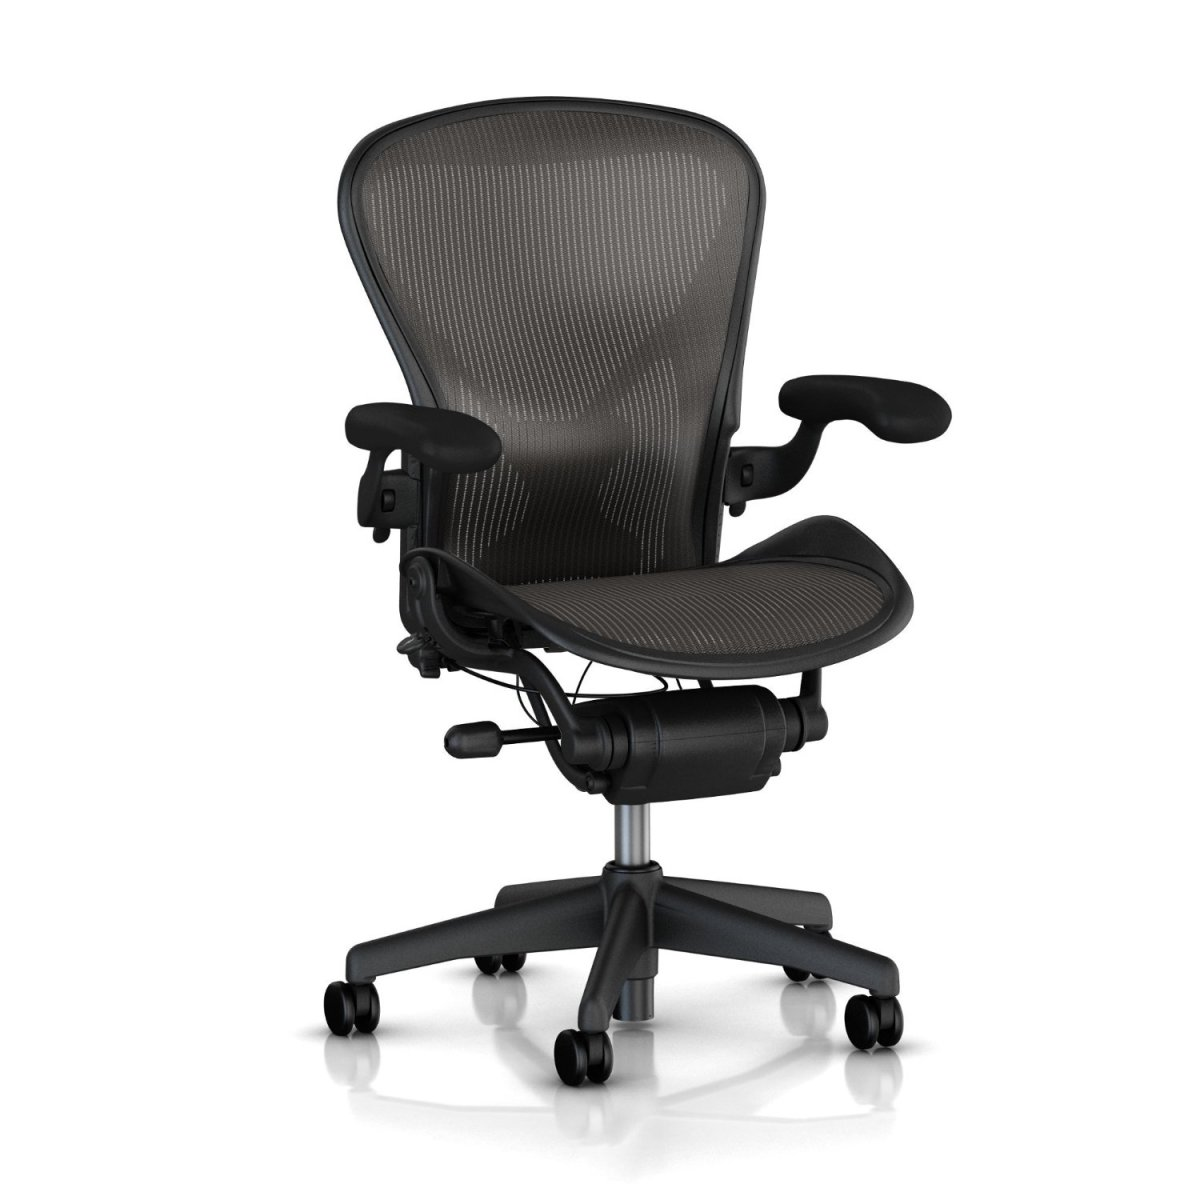 Want the best option available? I recommend Herman Miller's Aeron Chair for comfort, ergonomics, and durability.